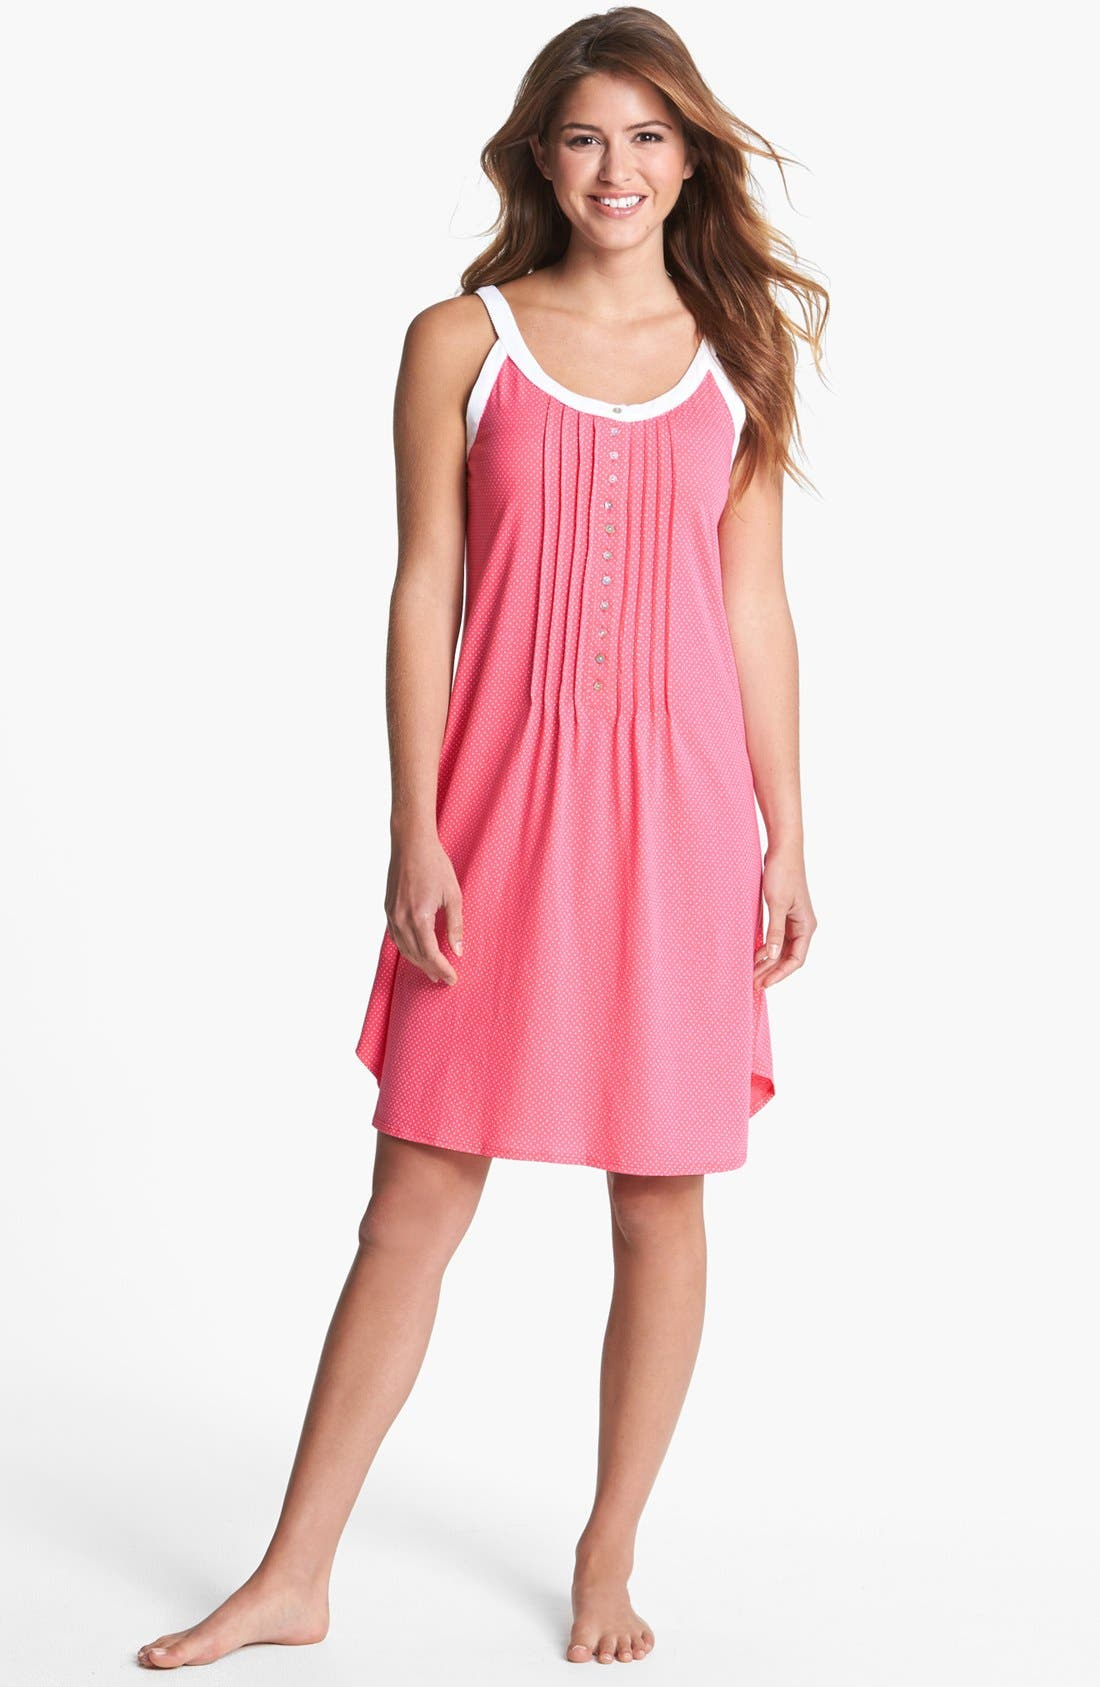 Alternate Image 1 Selected - Eileen West 'Beach Party' Short Nightgown